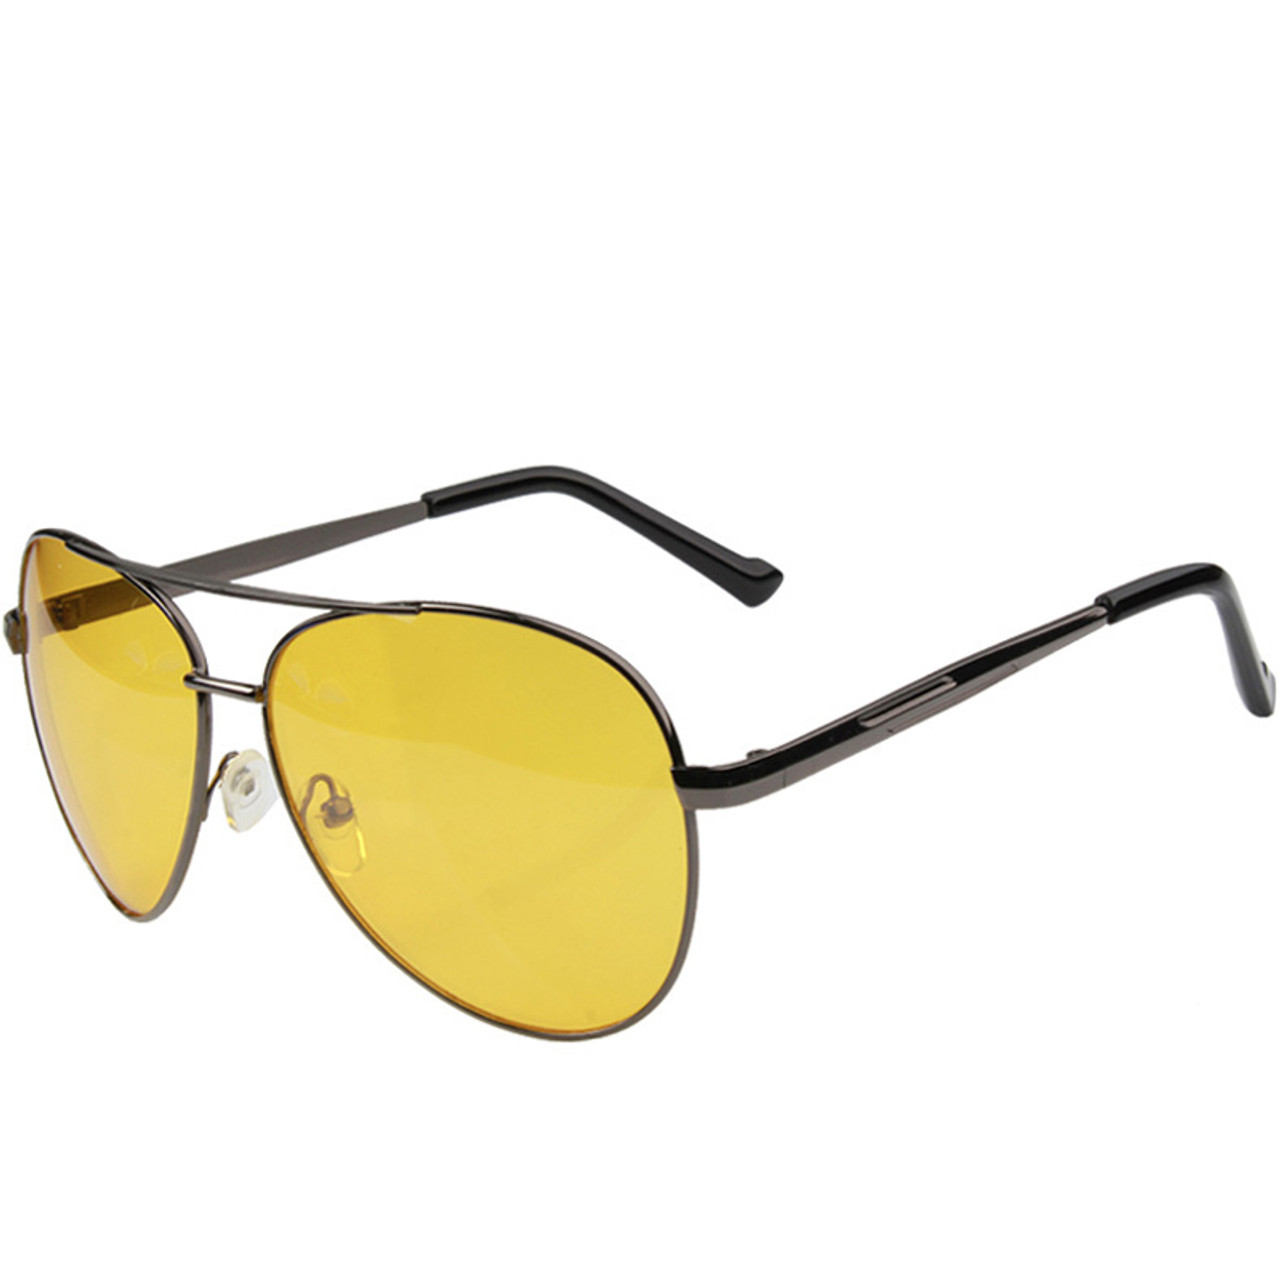 d9c9067a99 ... Pro Acme Aviation Night Vision glasses Driving Yellow Lens Classic Anti  Glare Vision Driver Safety glasses ...